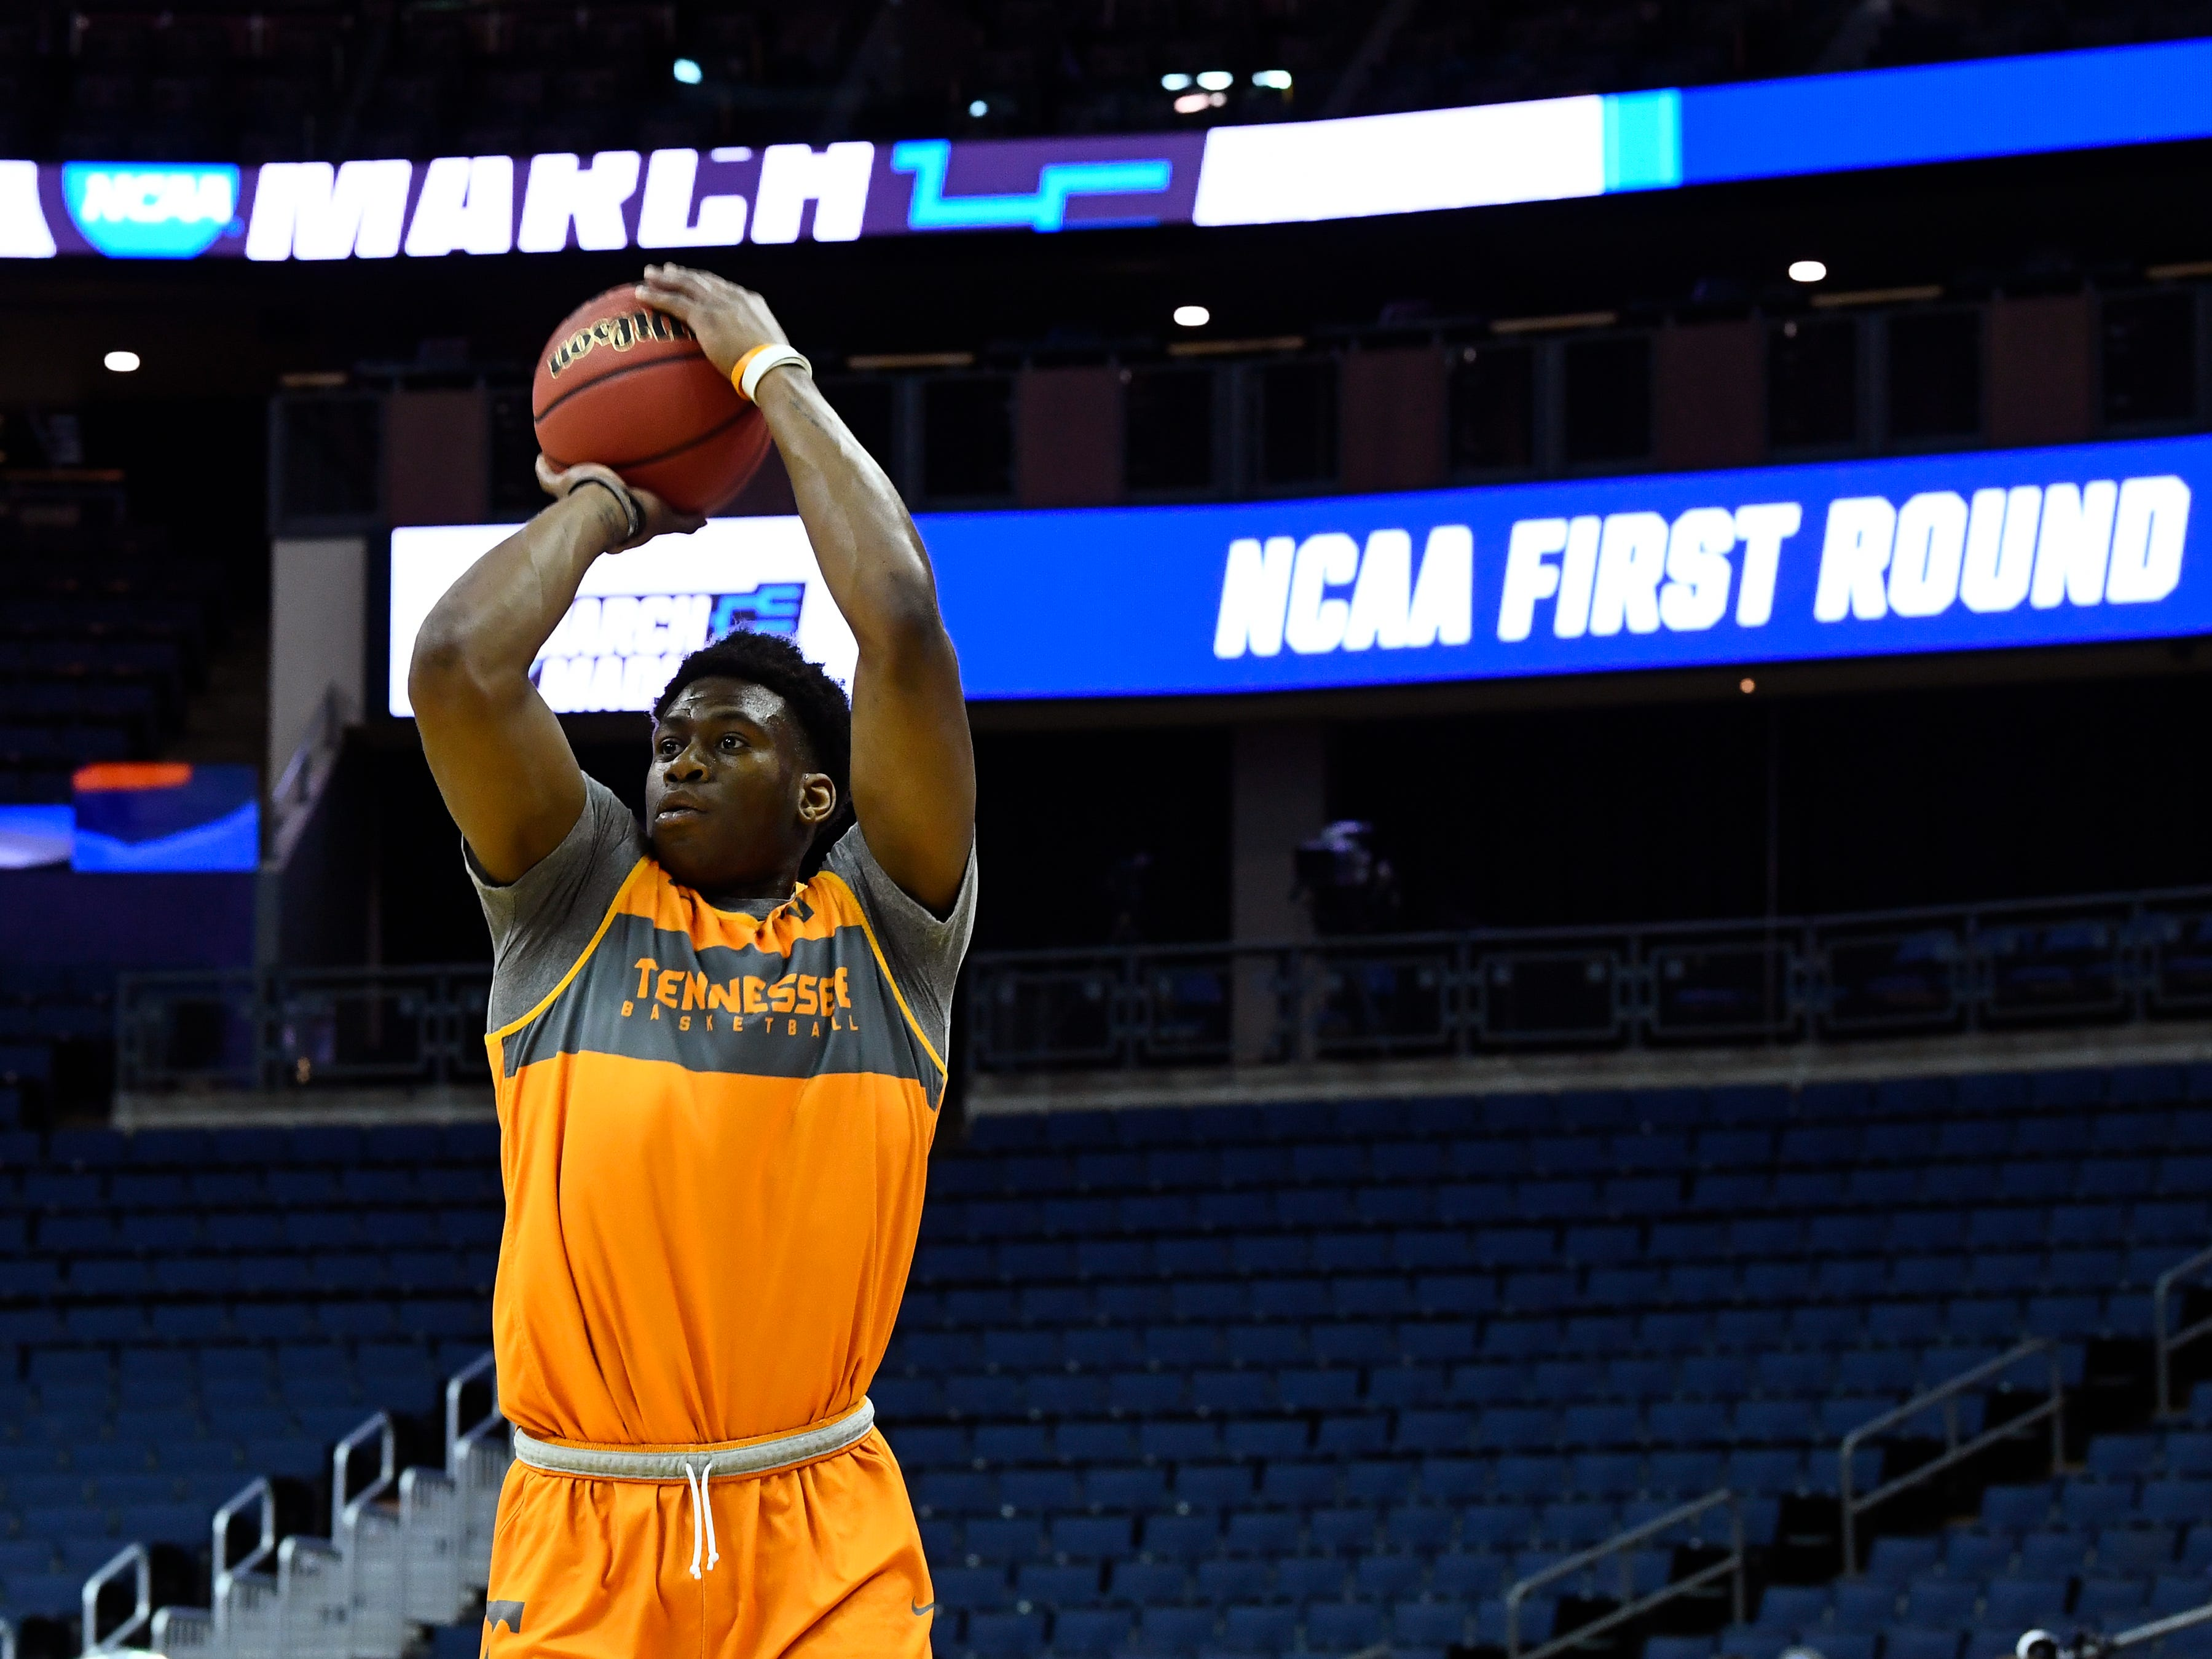 Tennessee guard Admiral Schofield (5) shoots the ball during Tennessee's practice on Thursday, March 21, 2019, before their first round NCAA Tournament game against Colgate at Nationwide Arena in Columbus, Ohio.